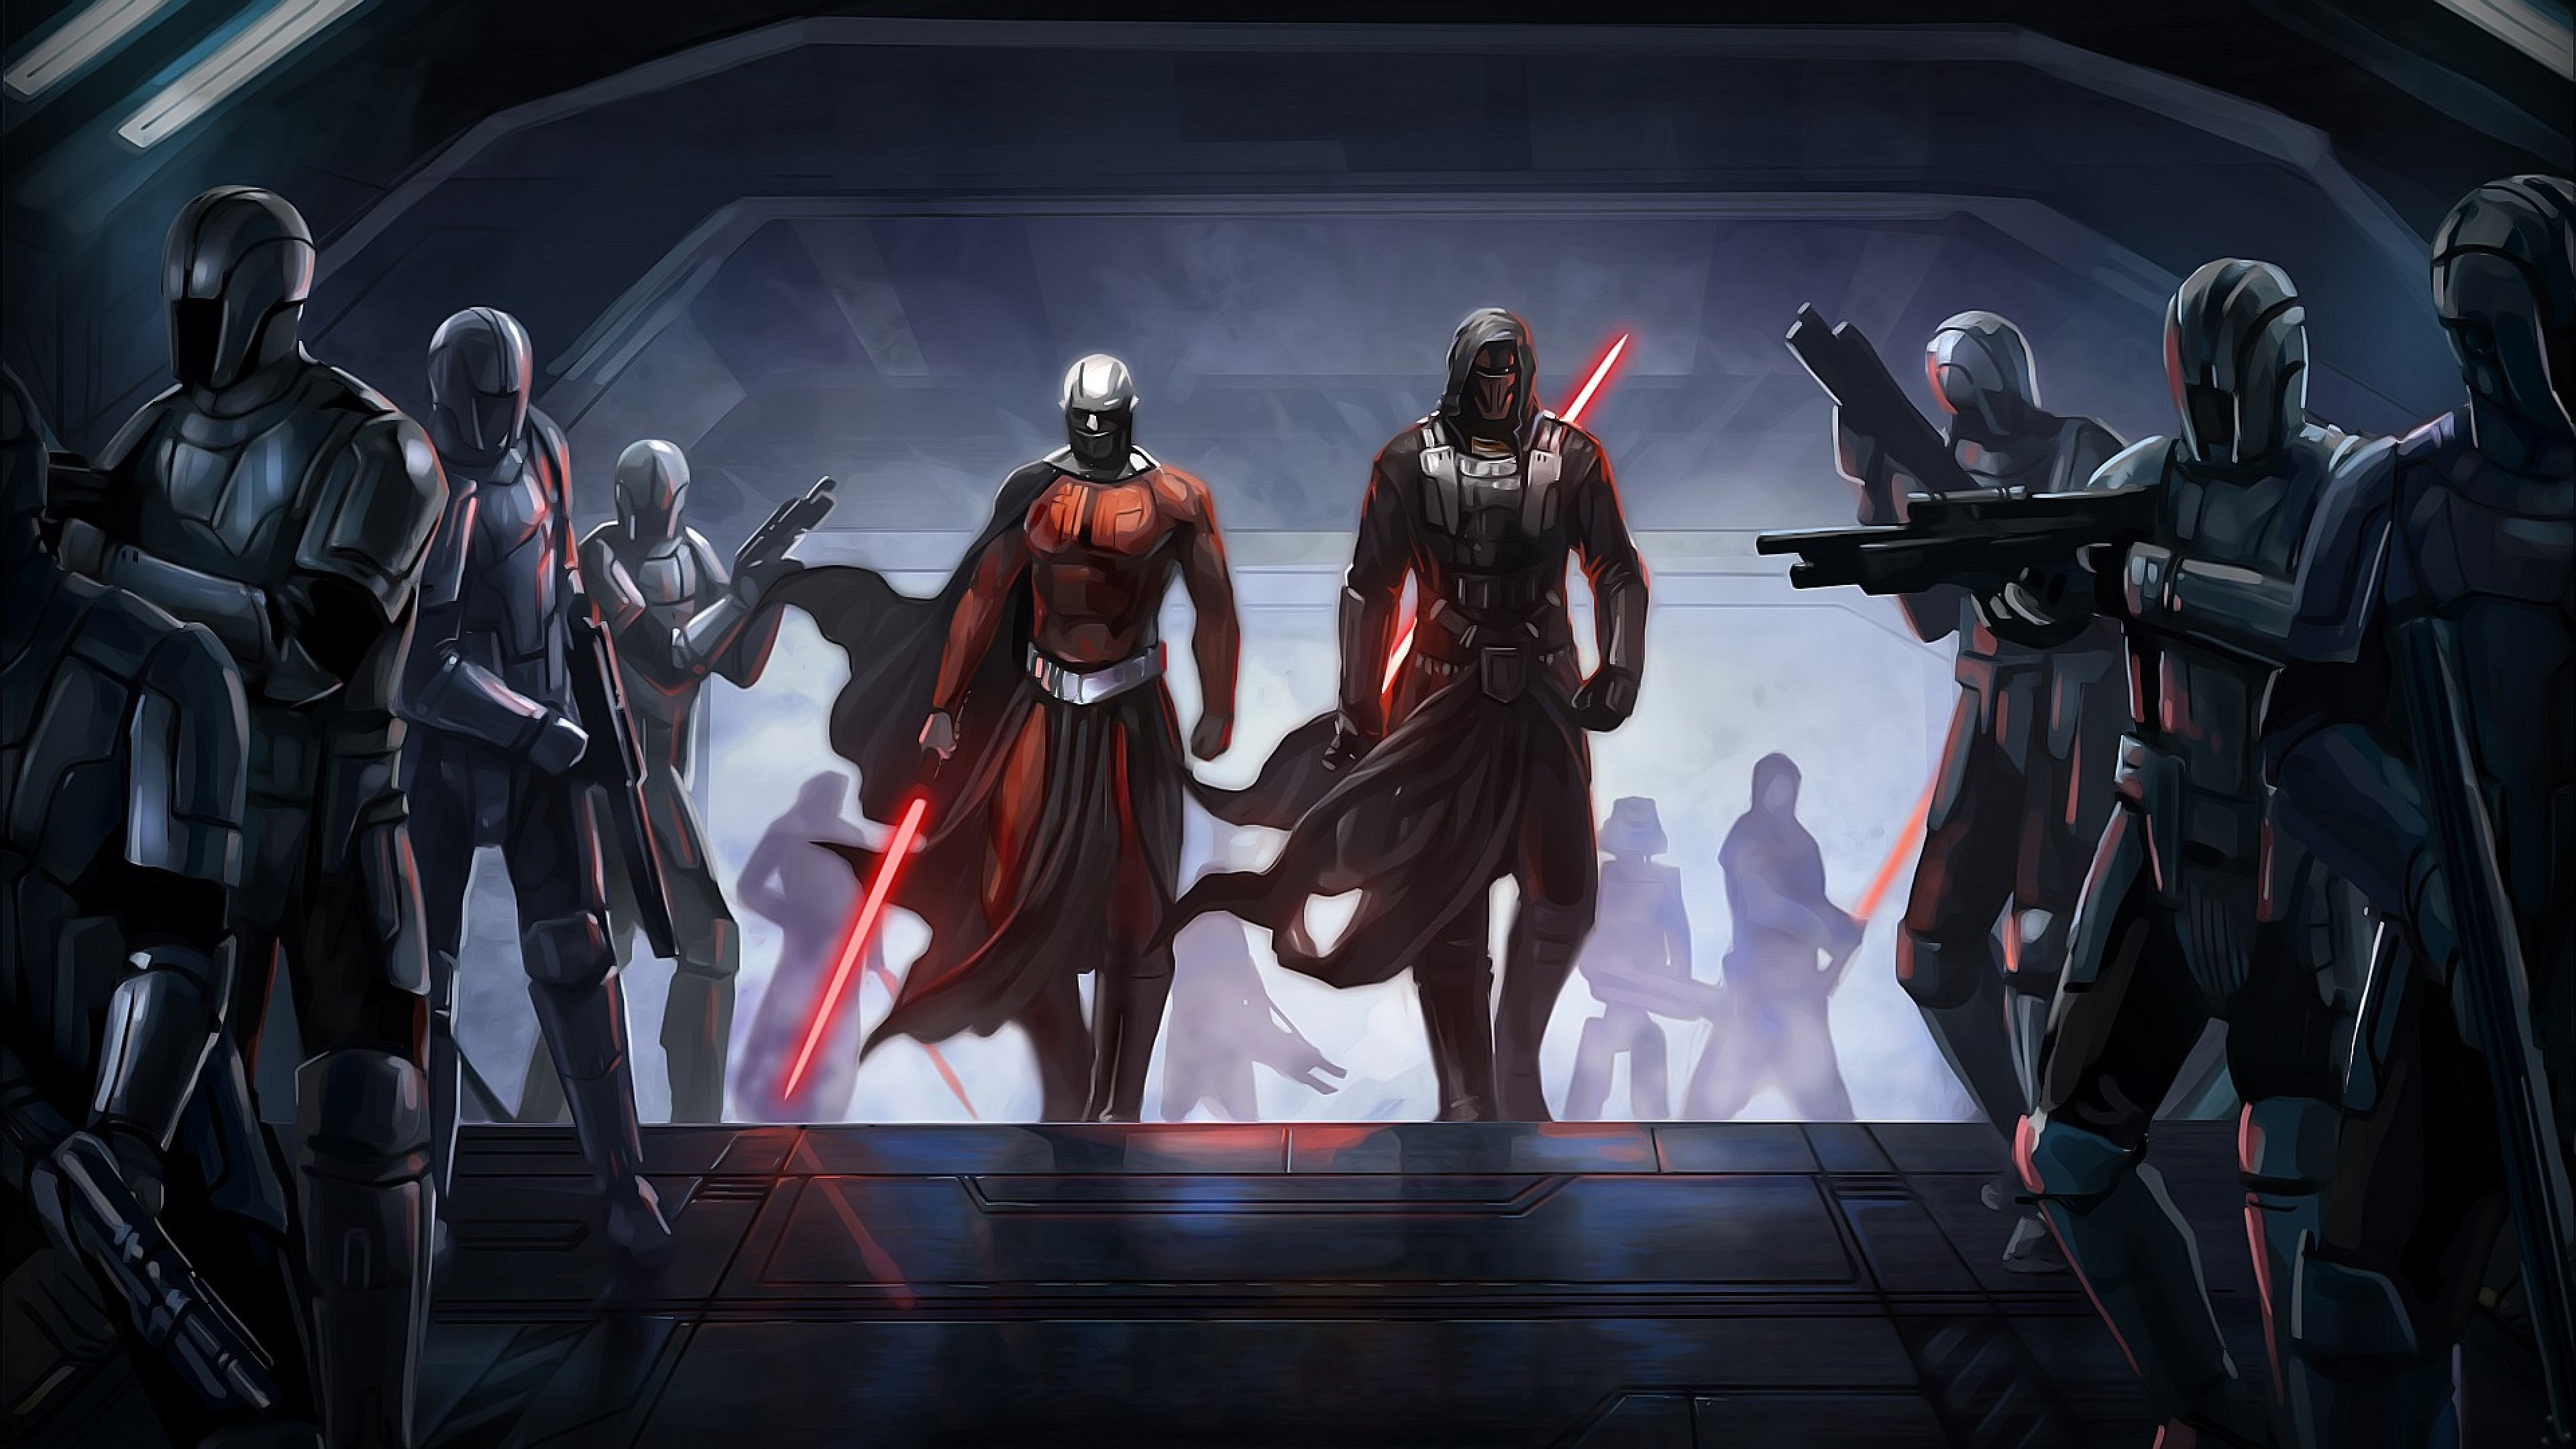 Wallpaper star wars the old republic, guard, characters .